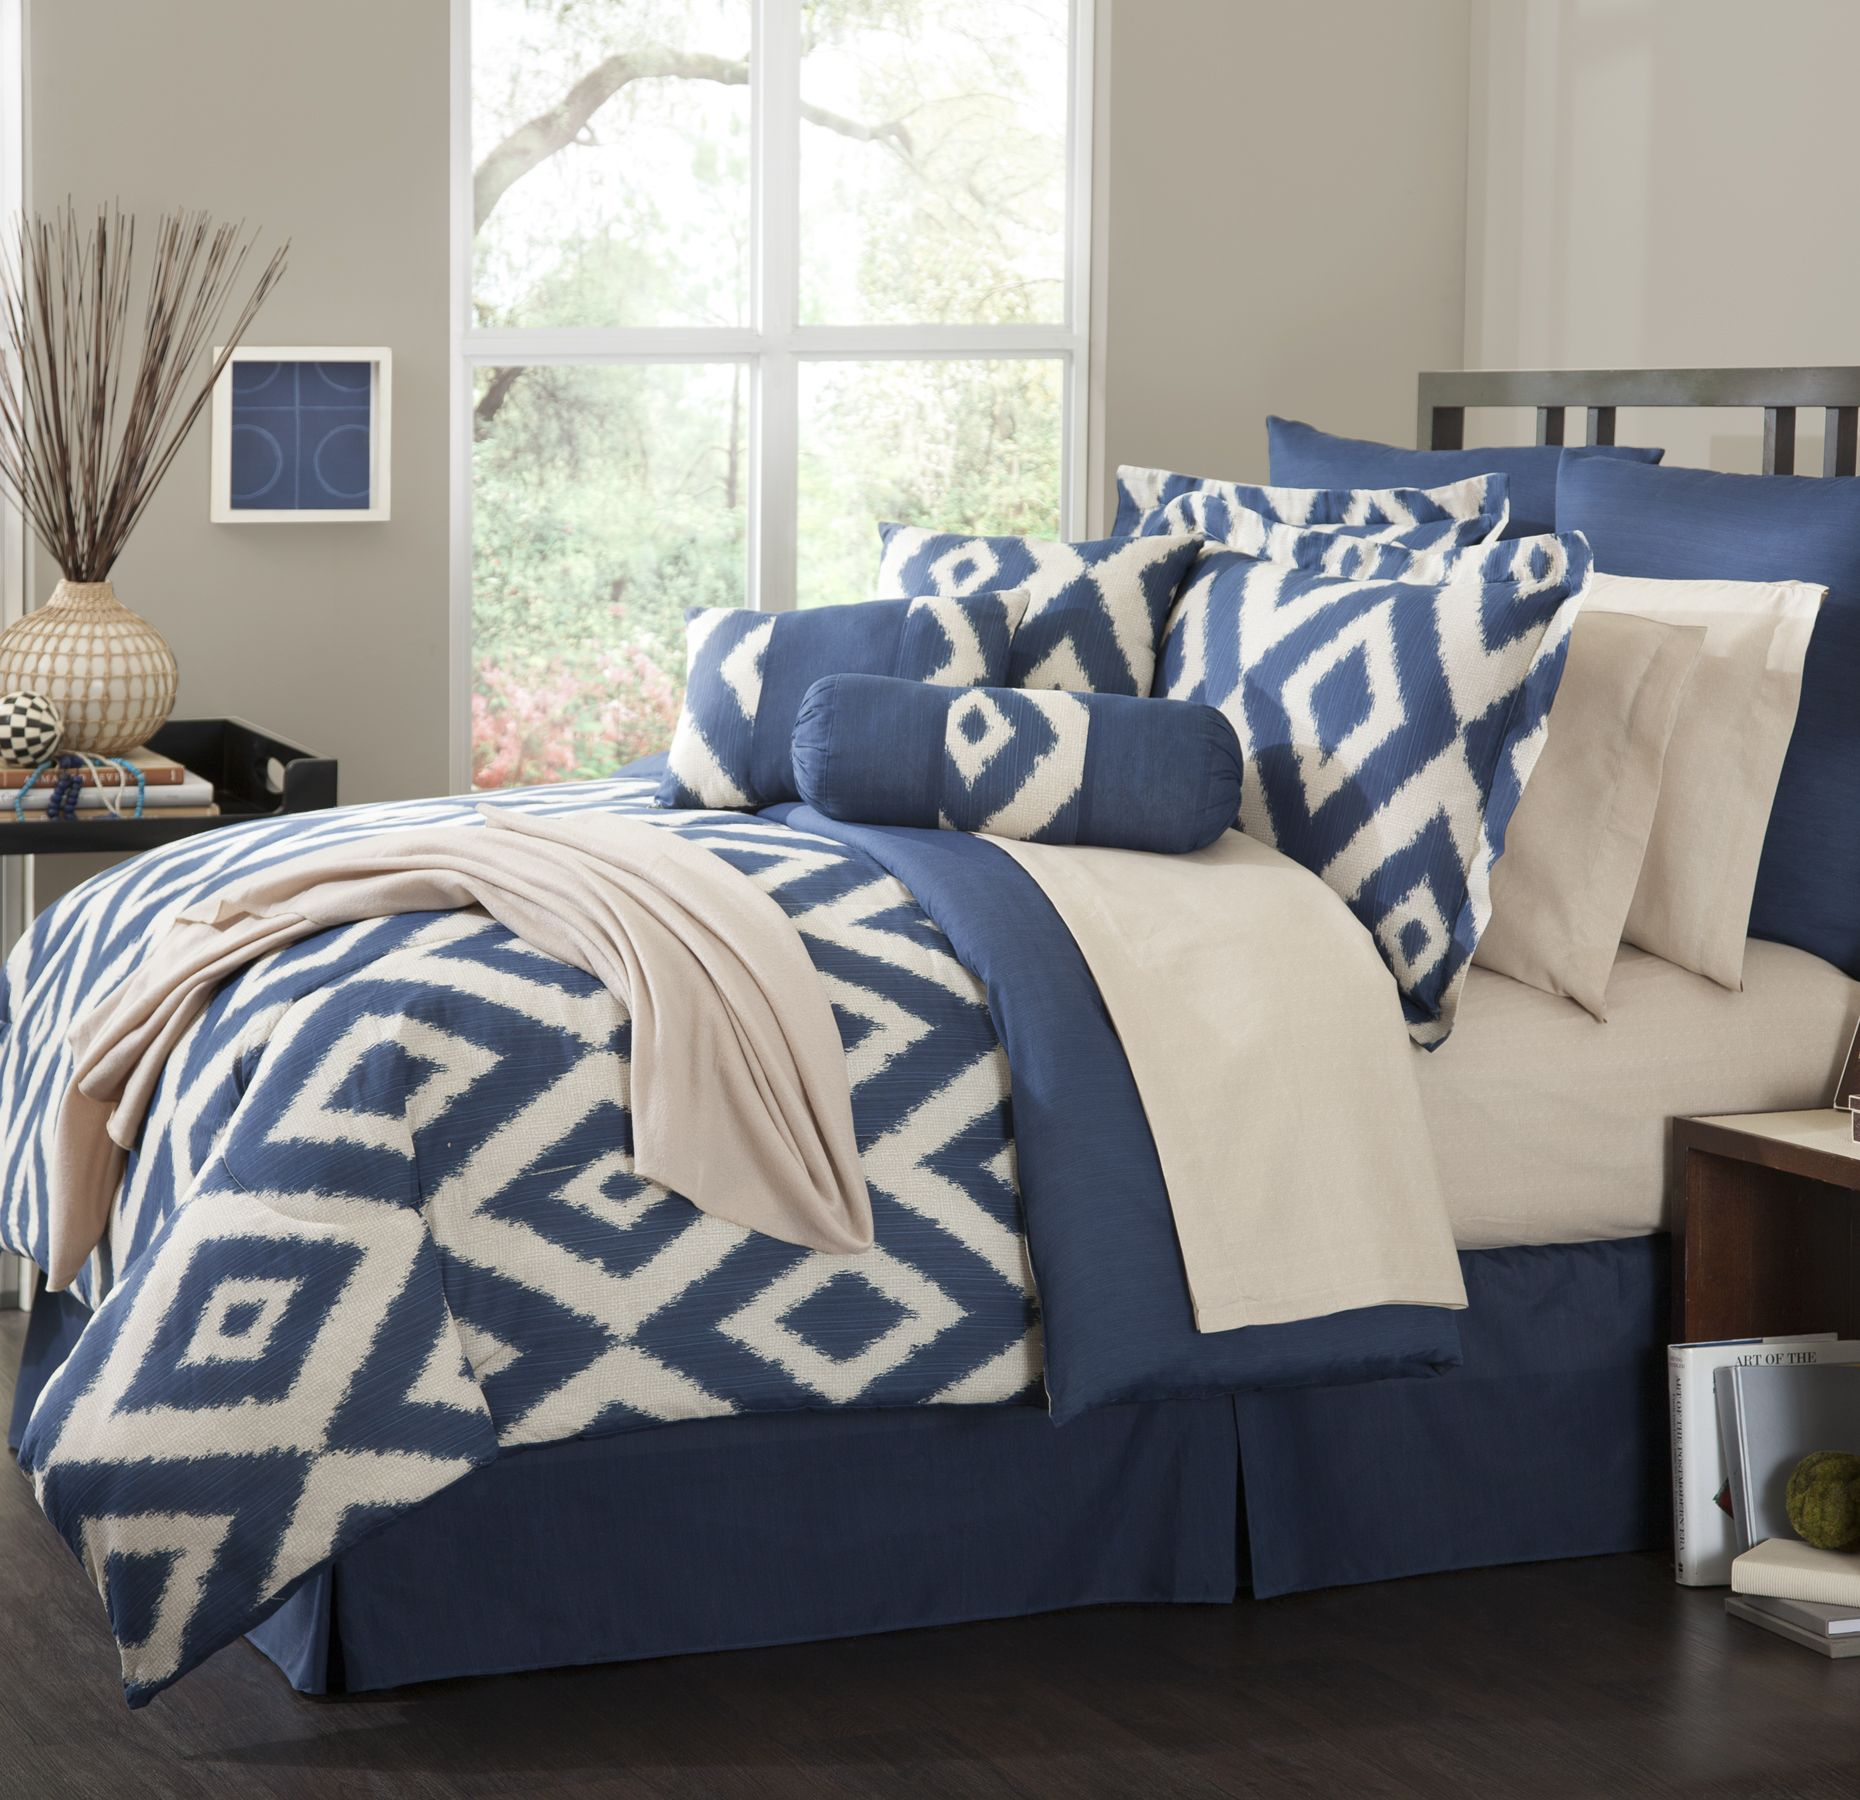 Navy Blue Comforter | Navy and Coral Bedding | Coral and Navy Bedding